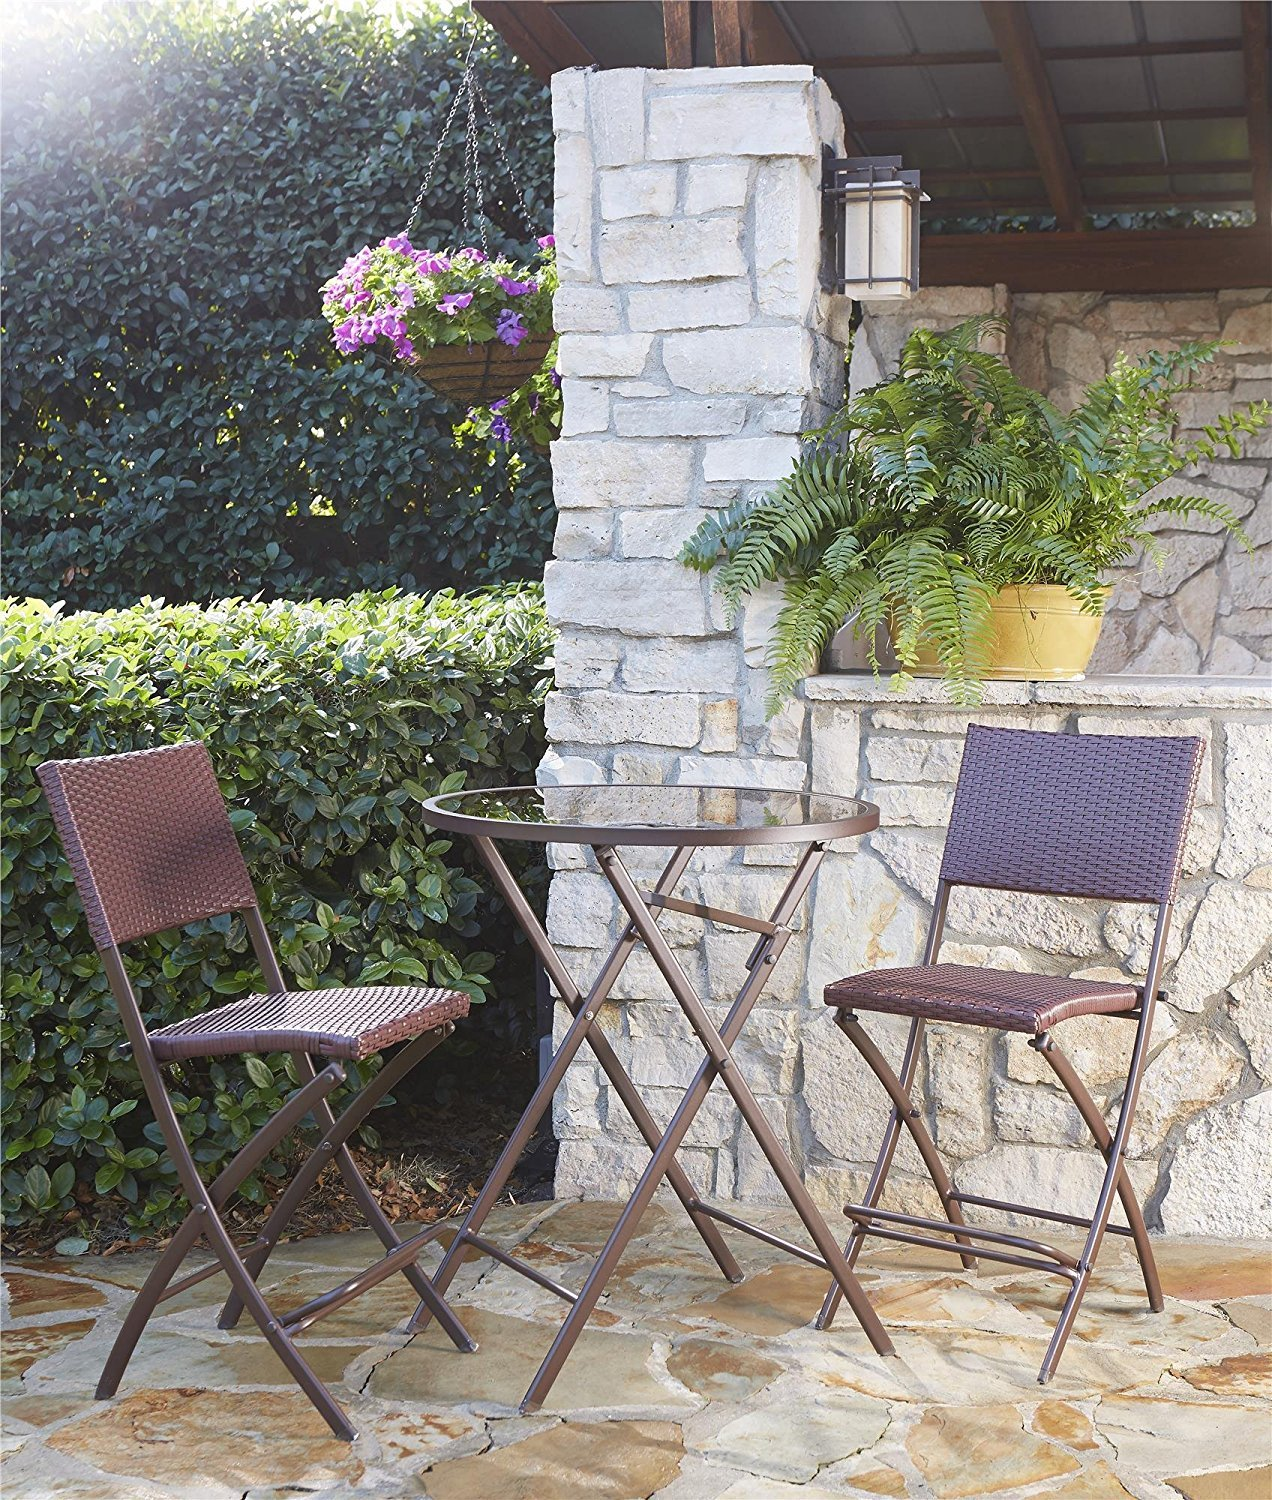 Cosco Outdoor High Top Bistro Set, Folding, 3 Piece, Steel Frame with Dark Brown and Red Wicker